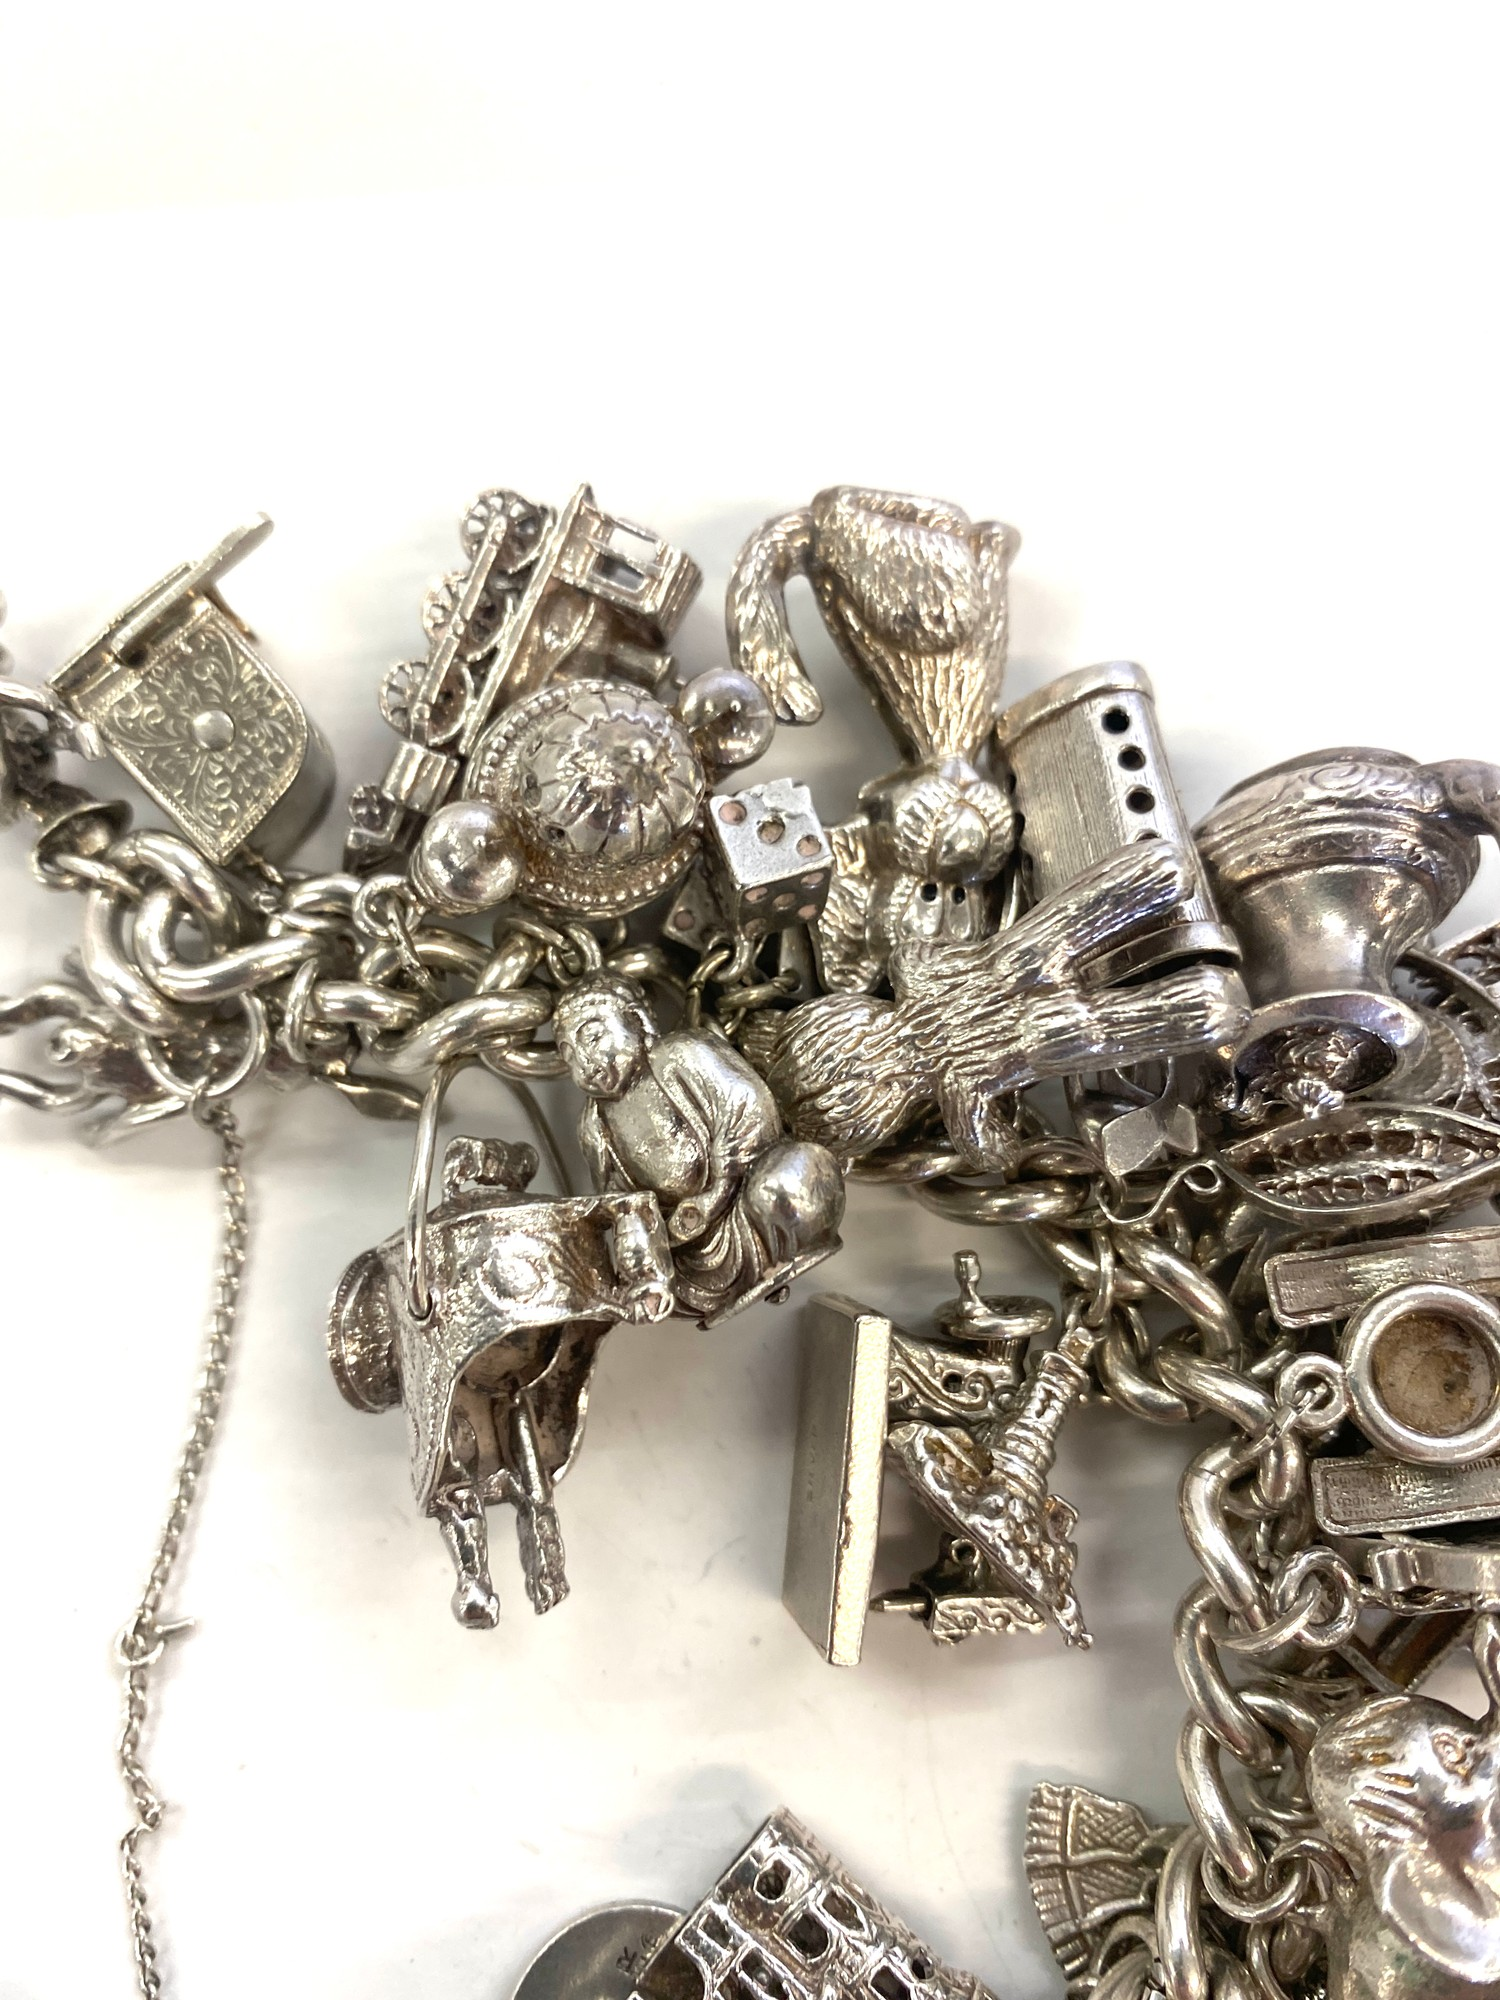 Silver charm bracelet weight approx 184.8g - Image 2 of 4